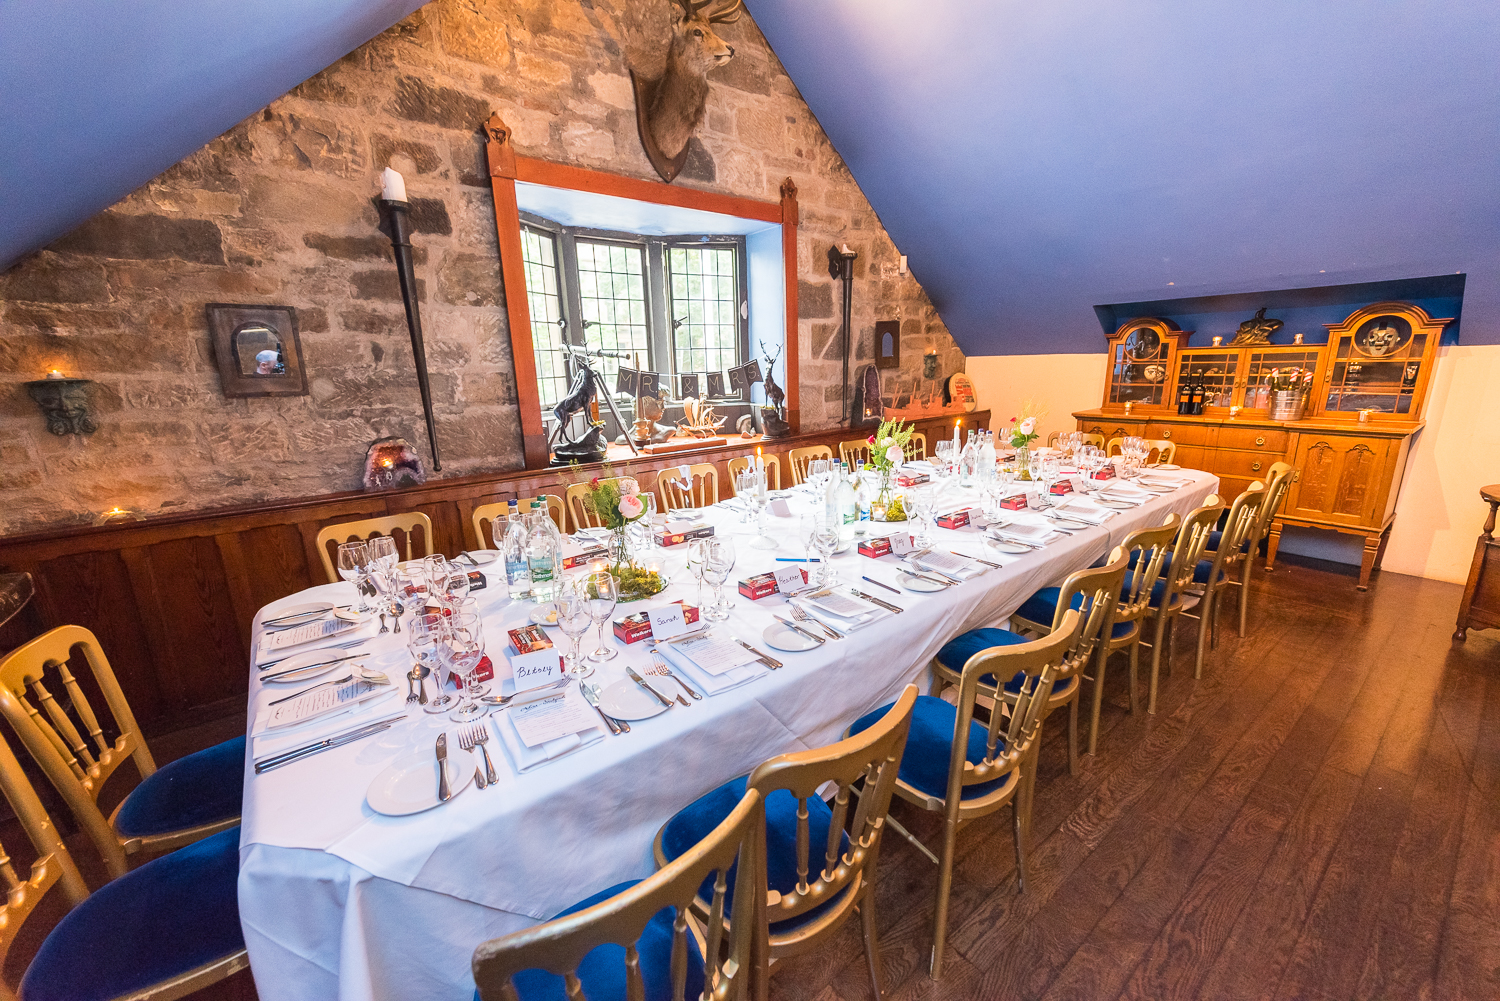 The Private Dining Room can be used in conjunction with The Gallery to  provide a full day for groups of 15 32 guests. ran M r   A Stunningly Unique Wedding Venue in Glasgow